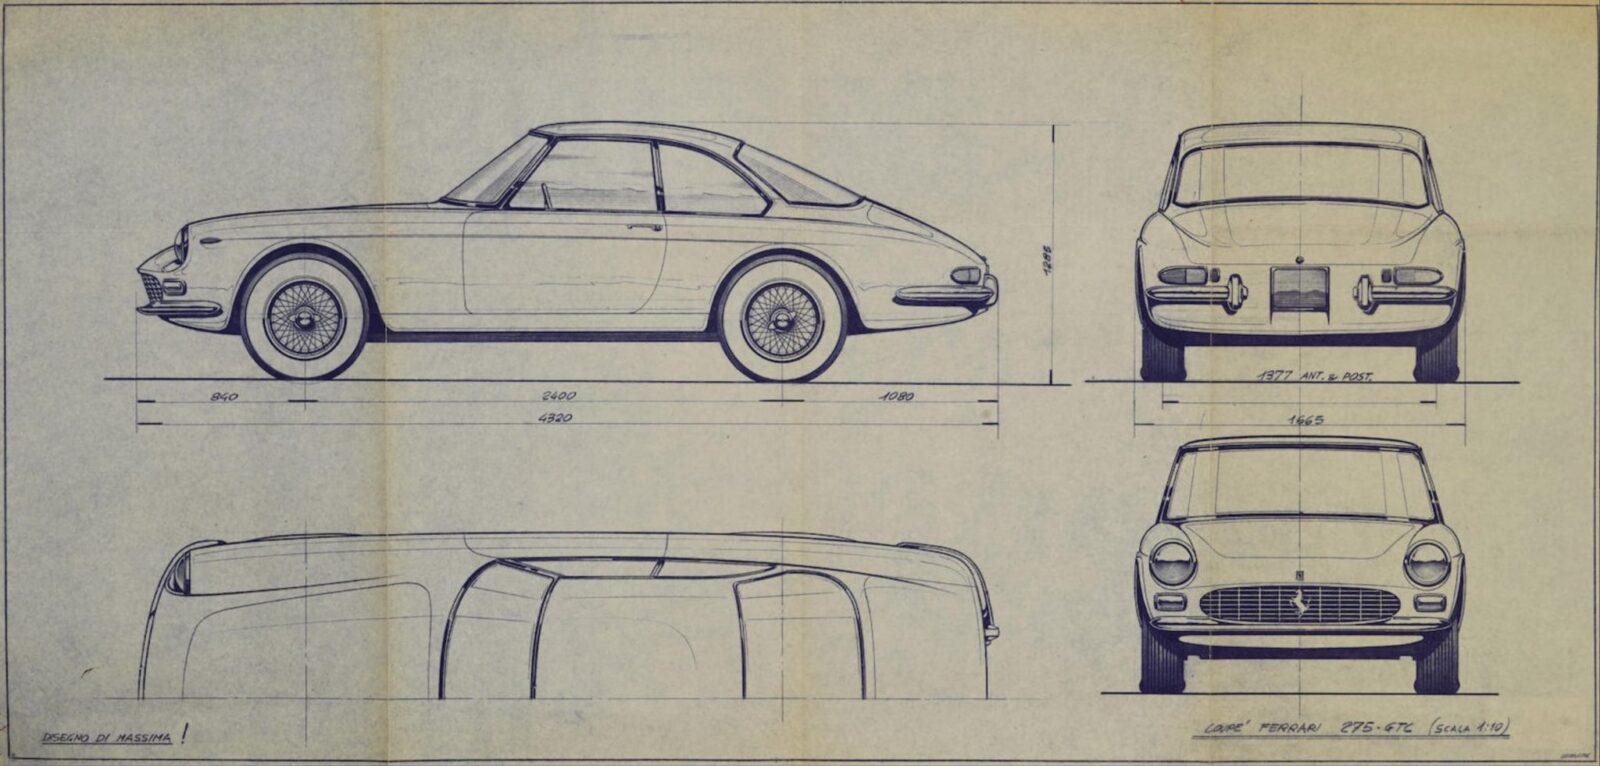 Original Pininfarina Blueprints